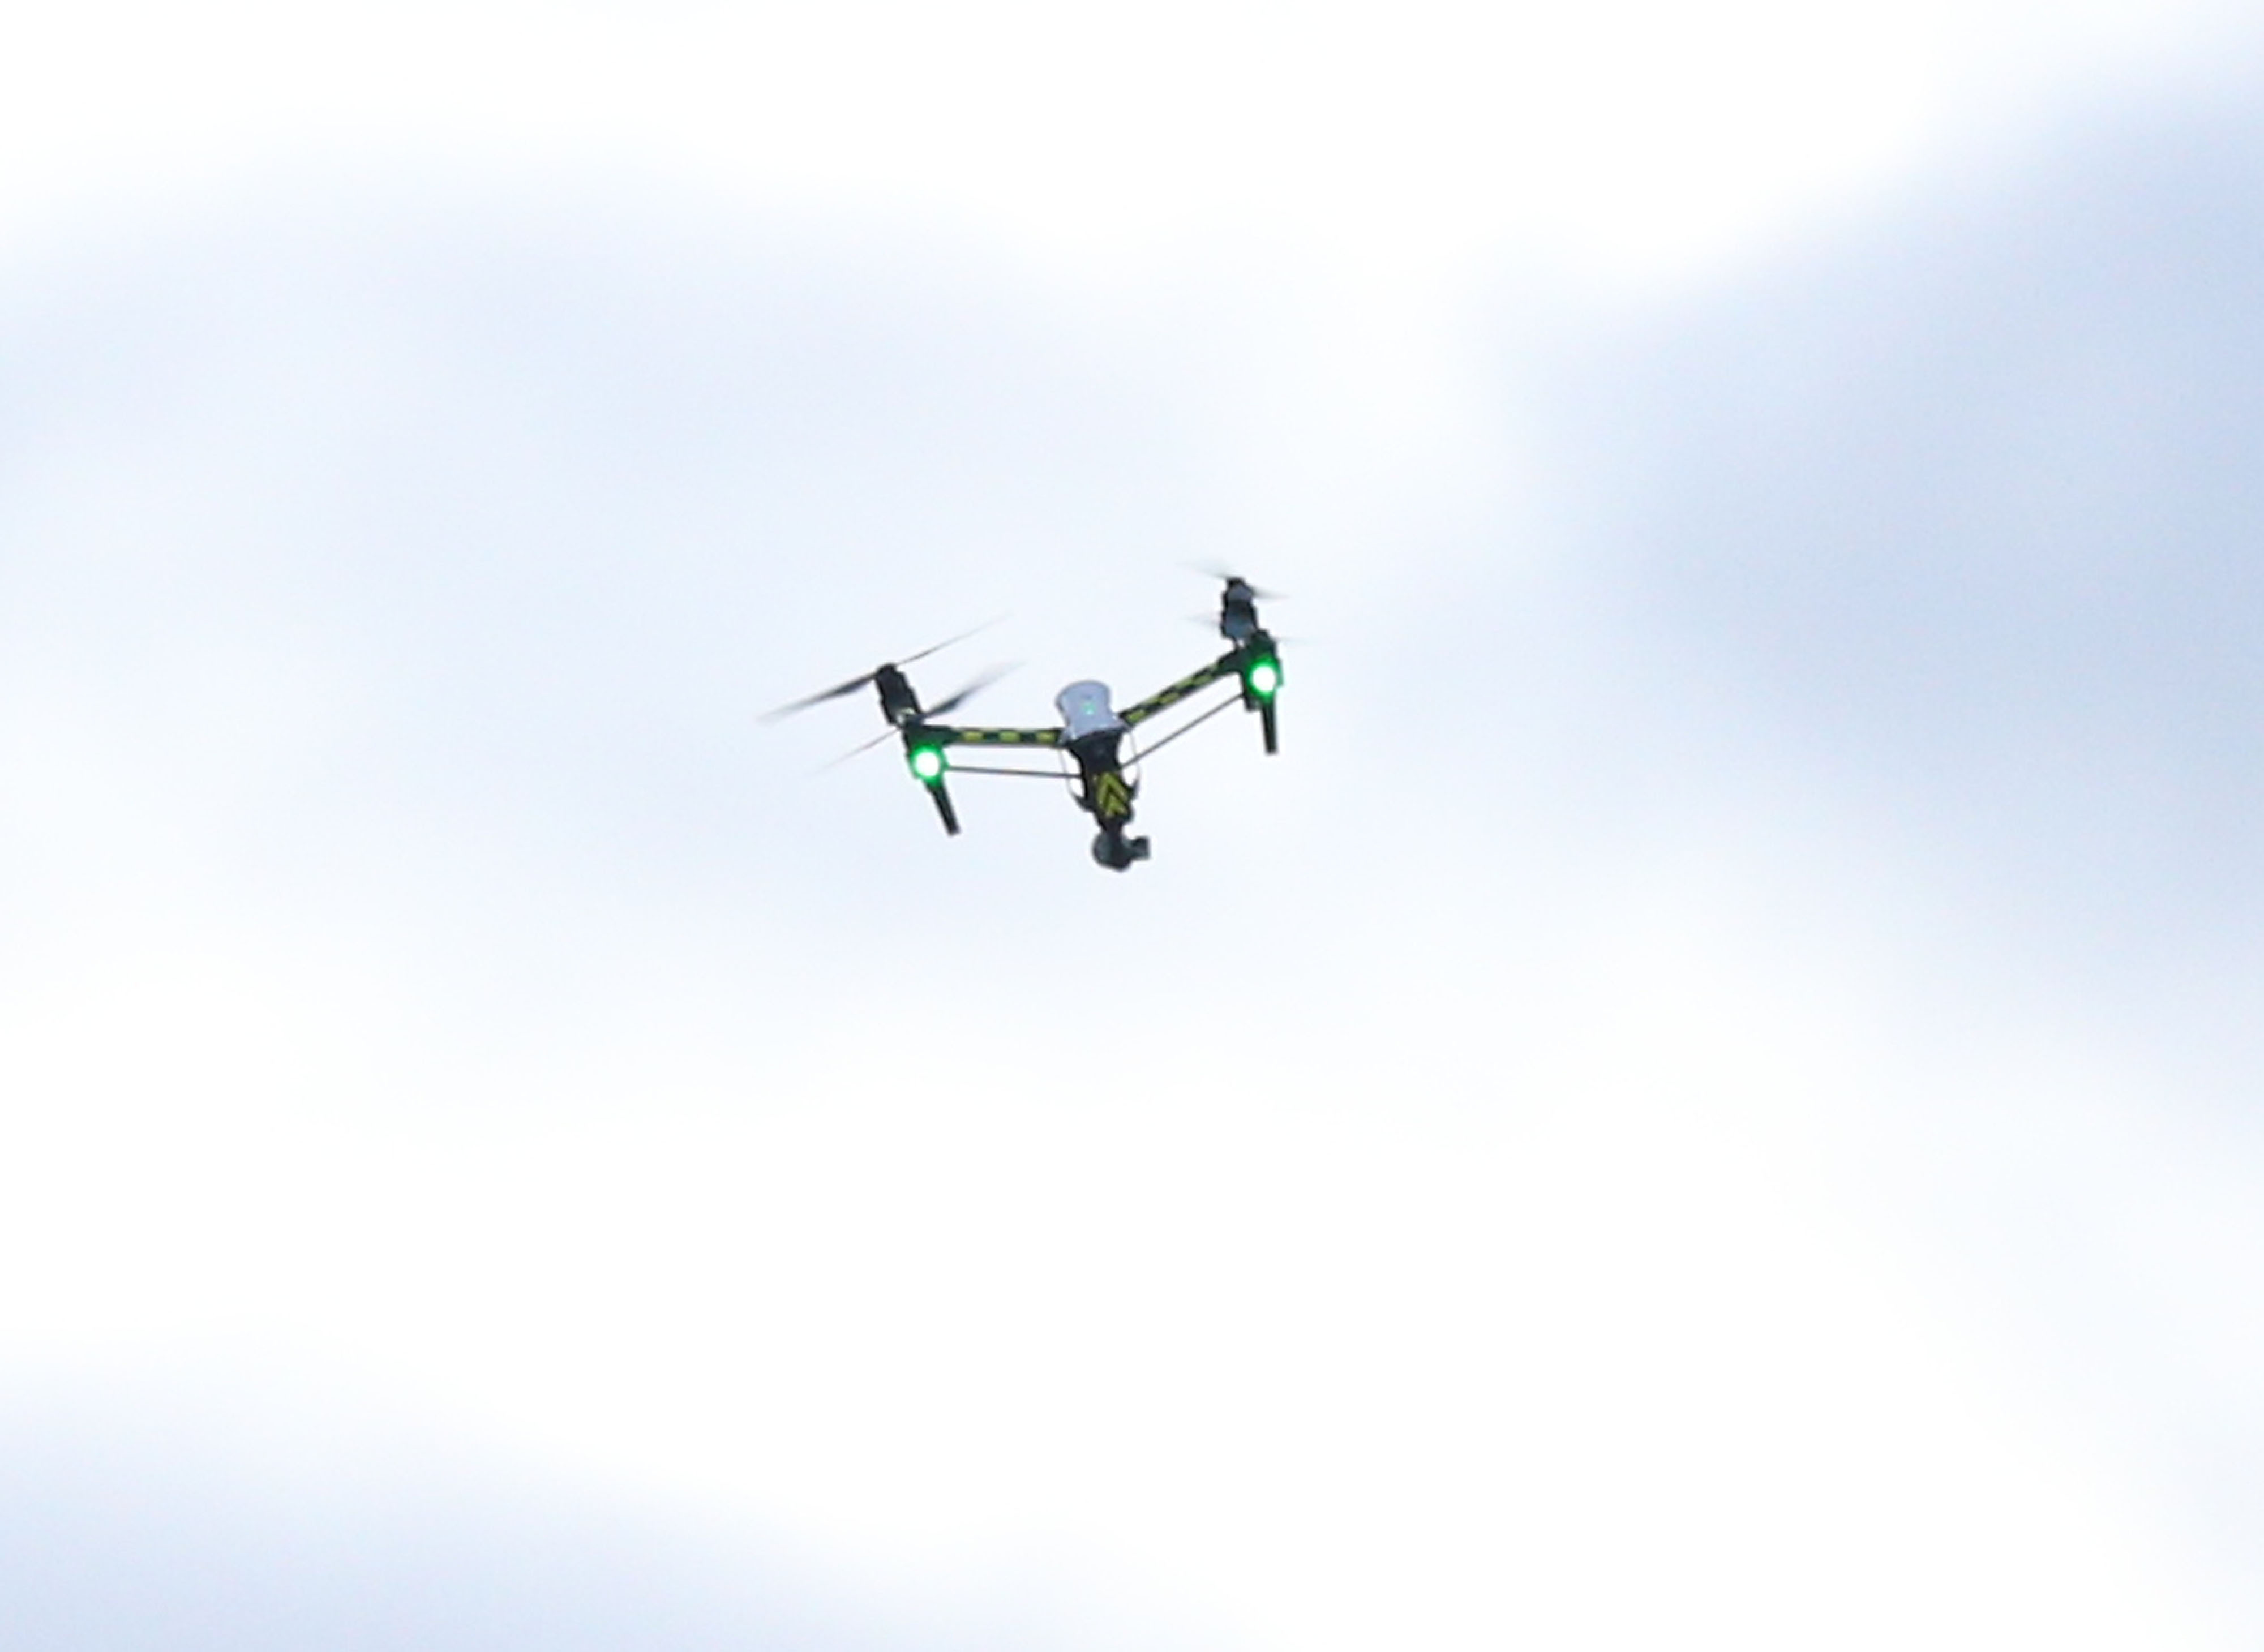 A traditional drone hovers in the air